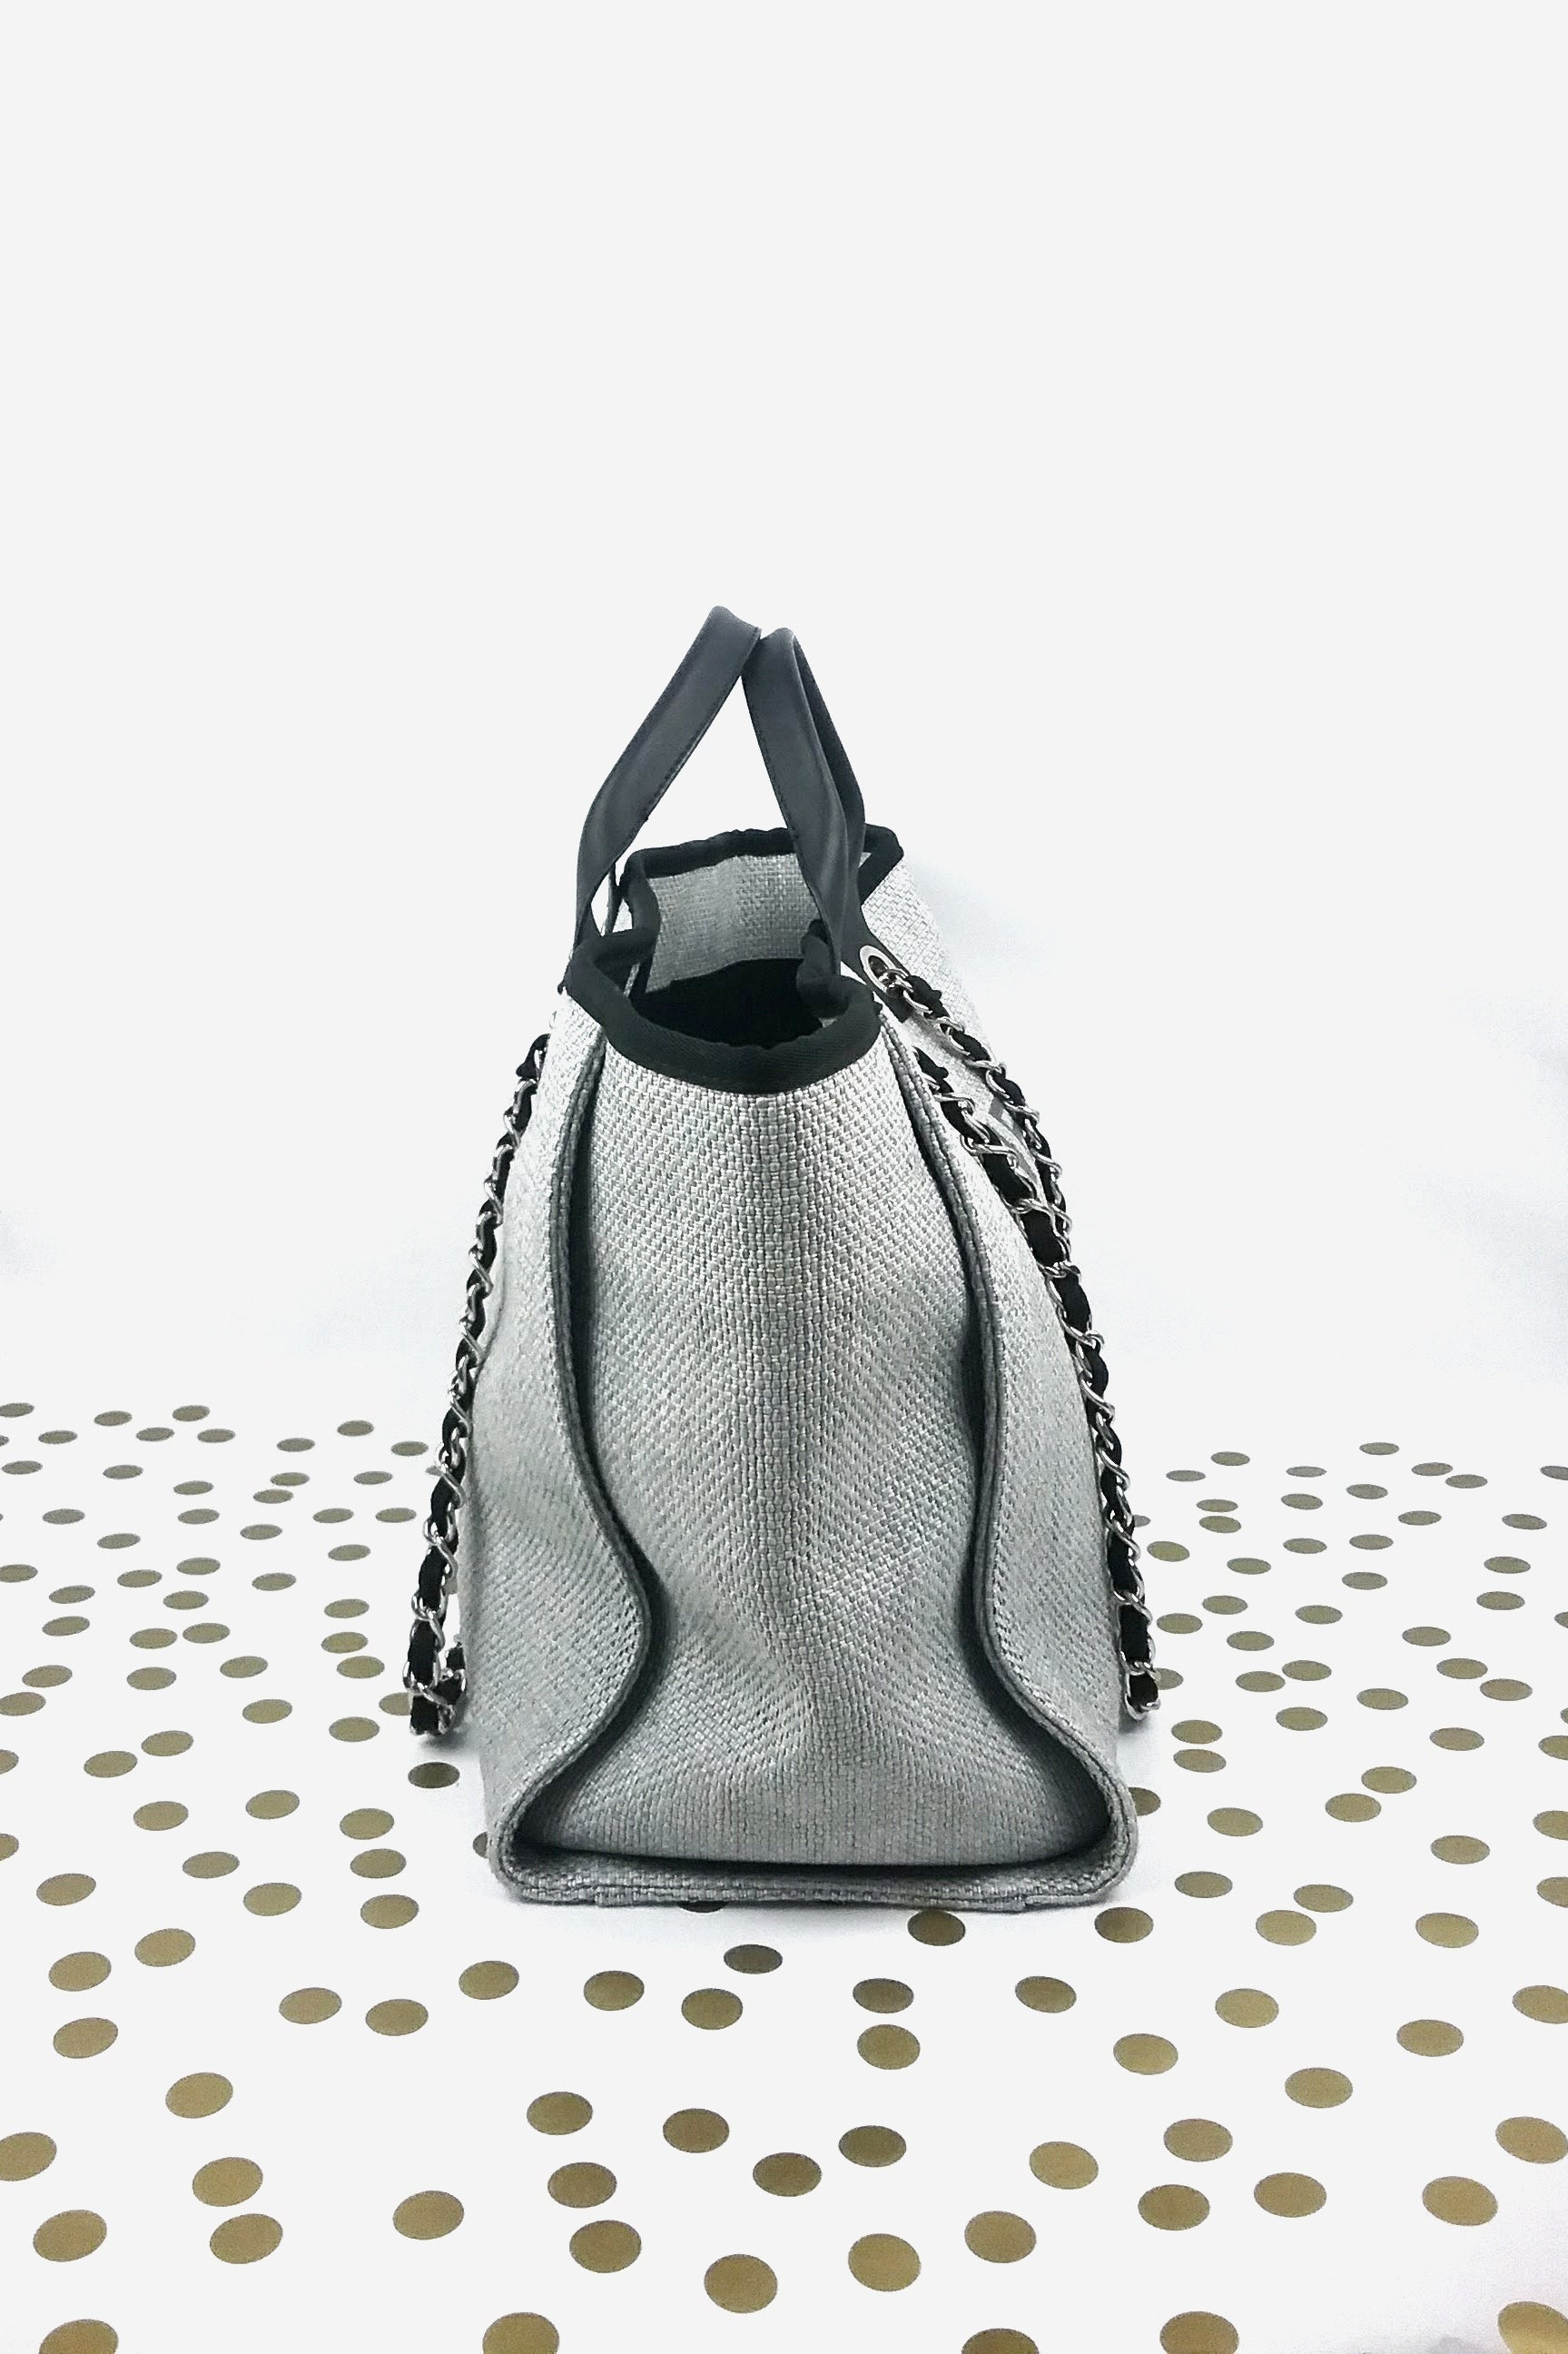 Grey Large Deauville Tote Bag - ON LAYAWAY